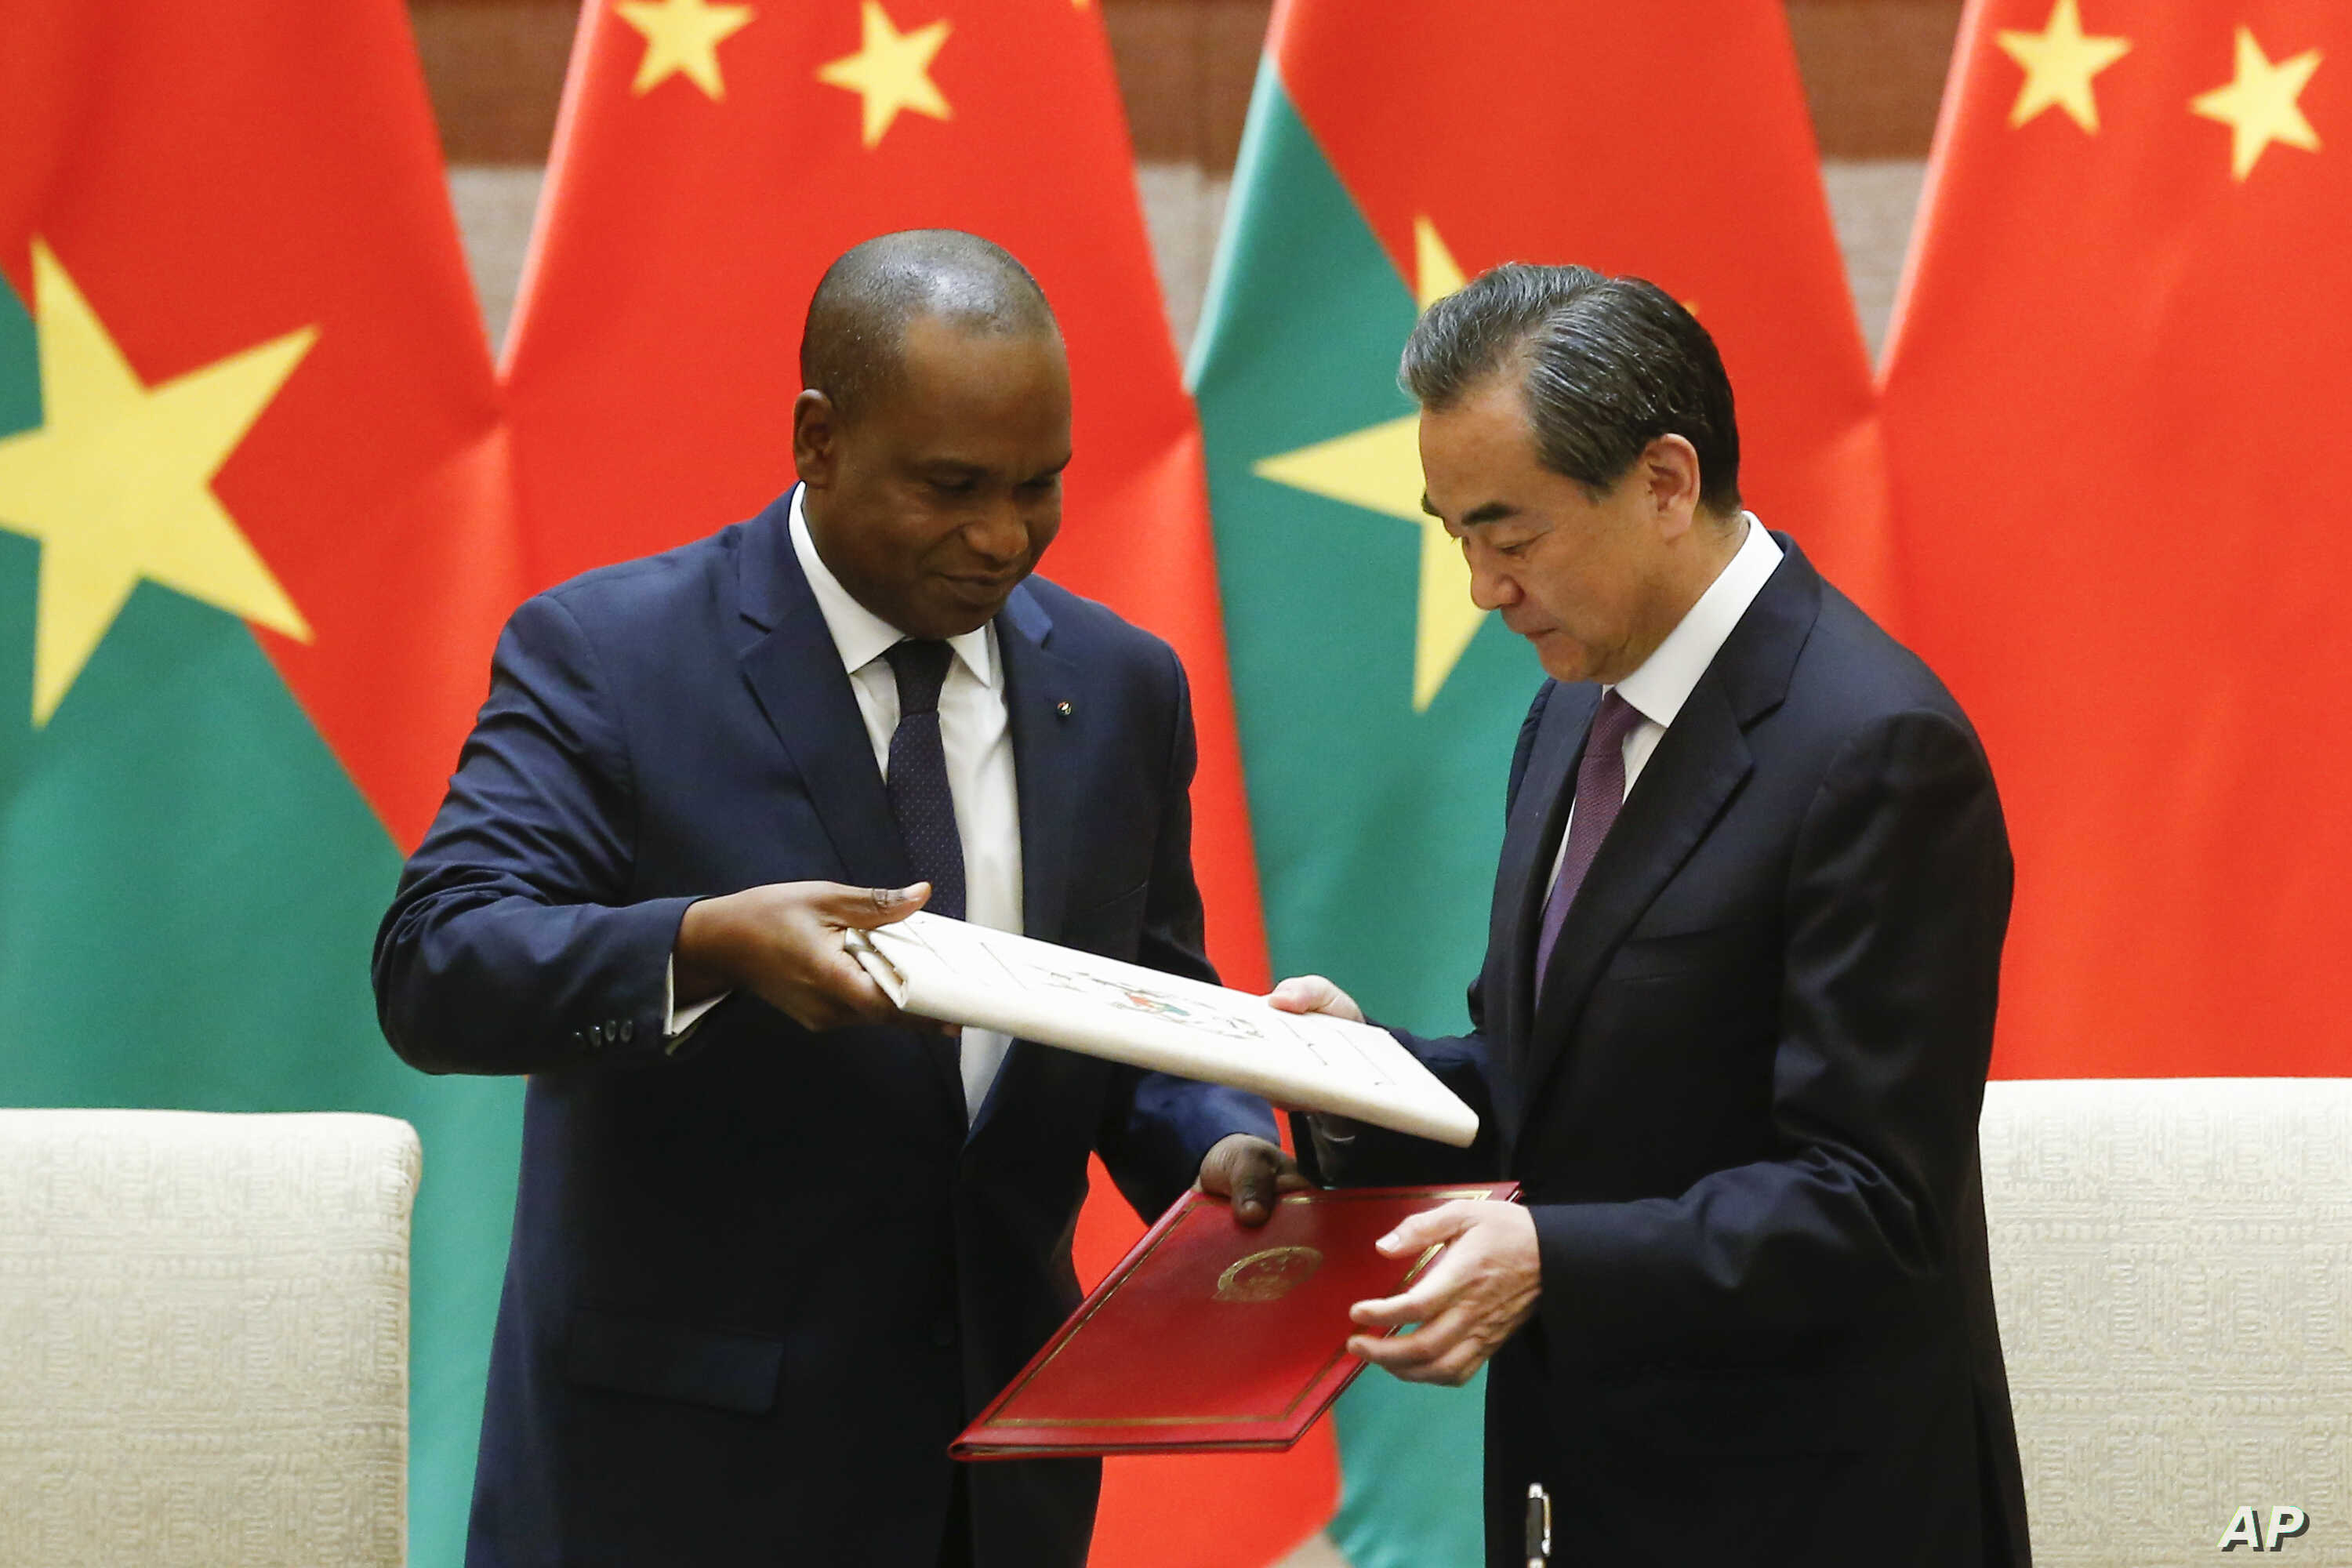 08a8188d86eca China's Foreign Minister Wang Yi, right, and Burkina Faso Foreign Minister  Alpha Barry attend a signing ceremony establishing diplomatic relations  between ...